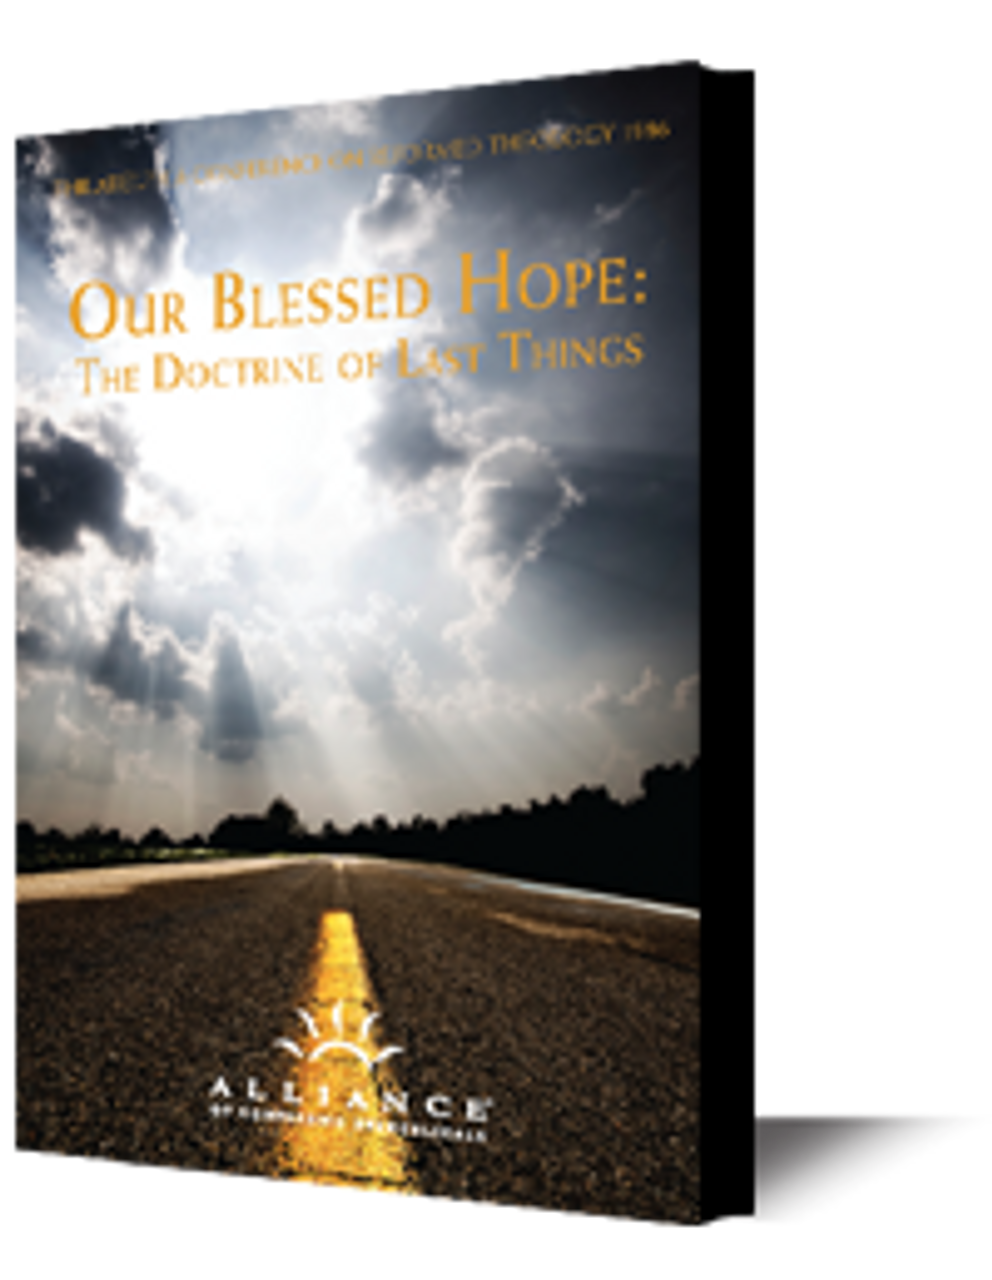 Our Blessed Hope: The Doctrine of Last Things PCRT 1986 (CD Set)